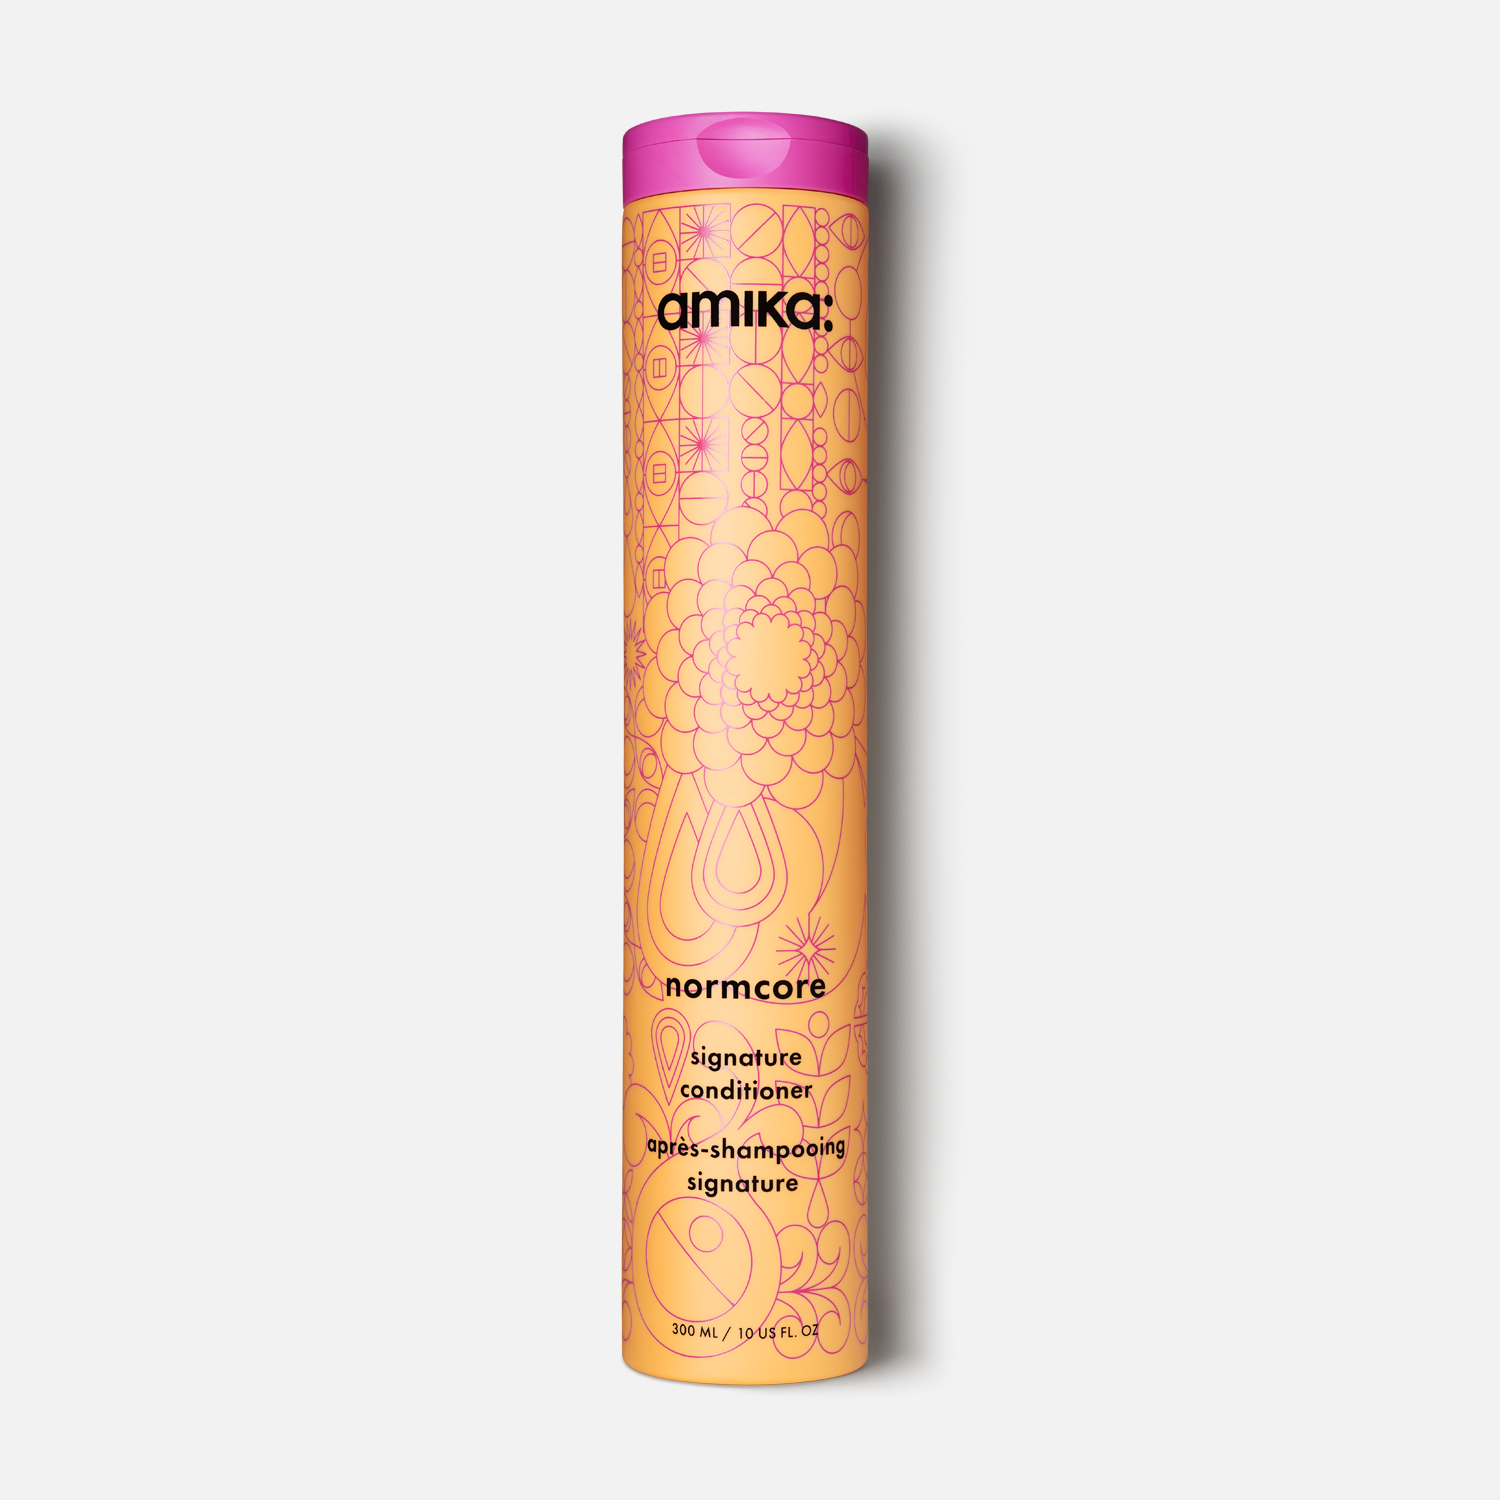 Normcore Signature Conditioner 300 ml | amika